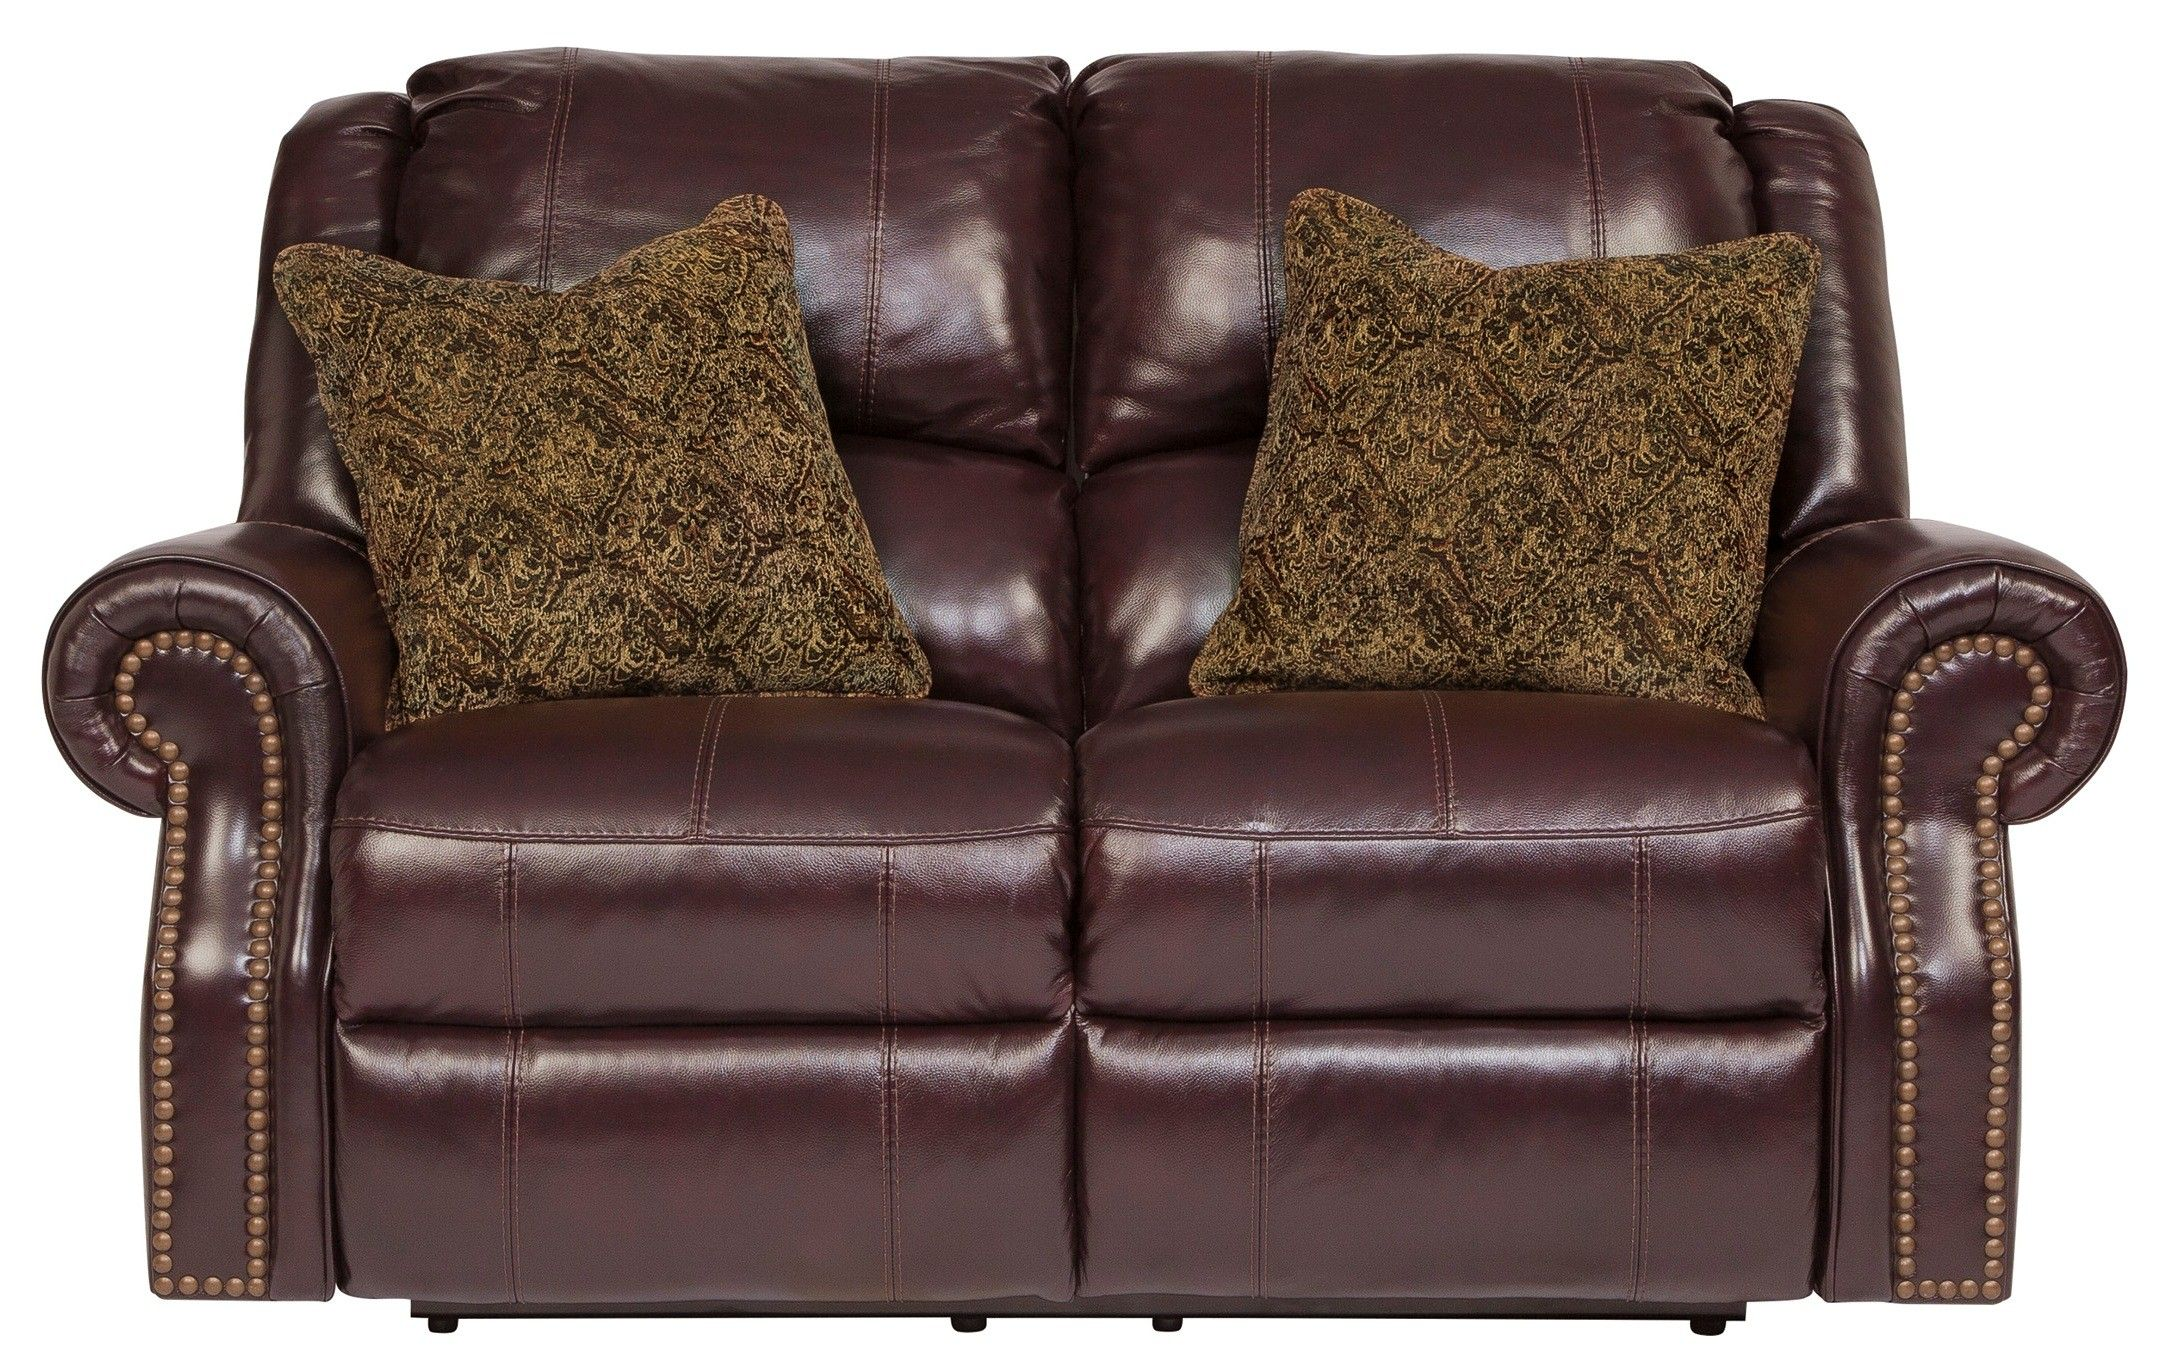 Walworth Blackcherry Reclining Loveseat